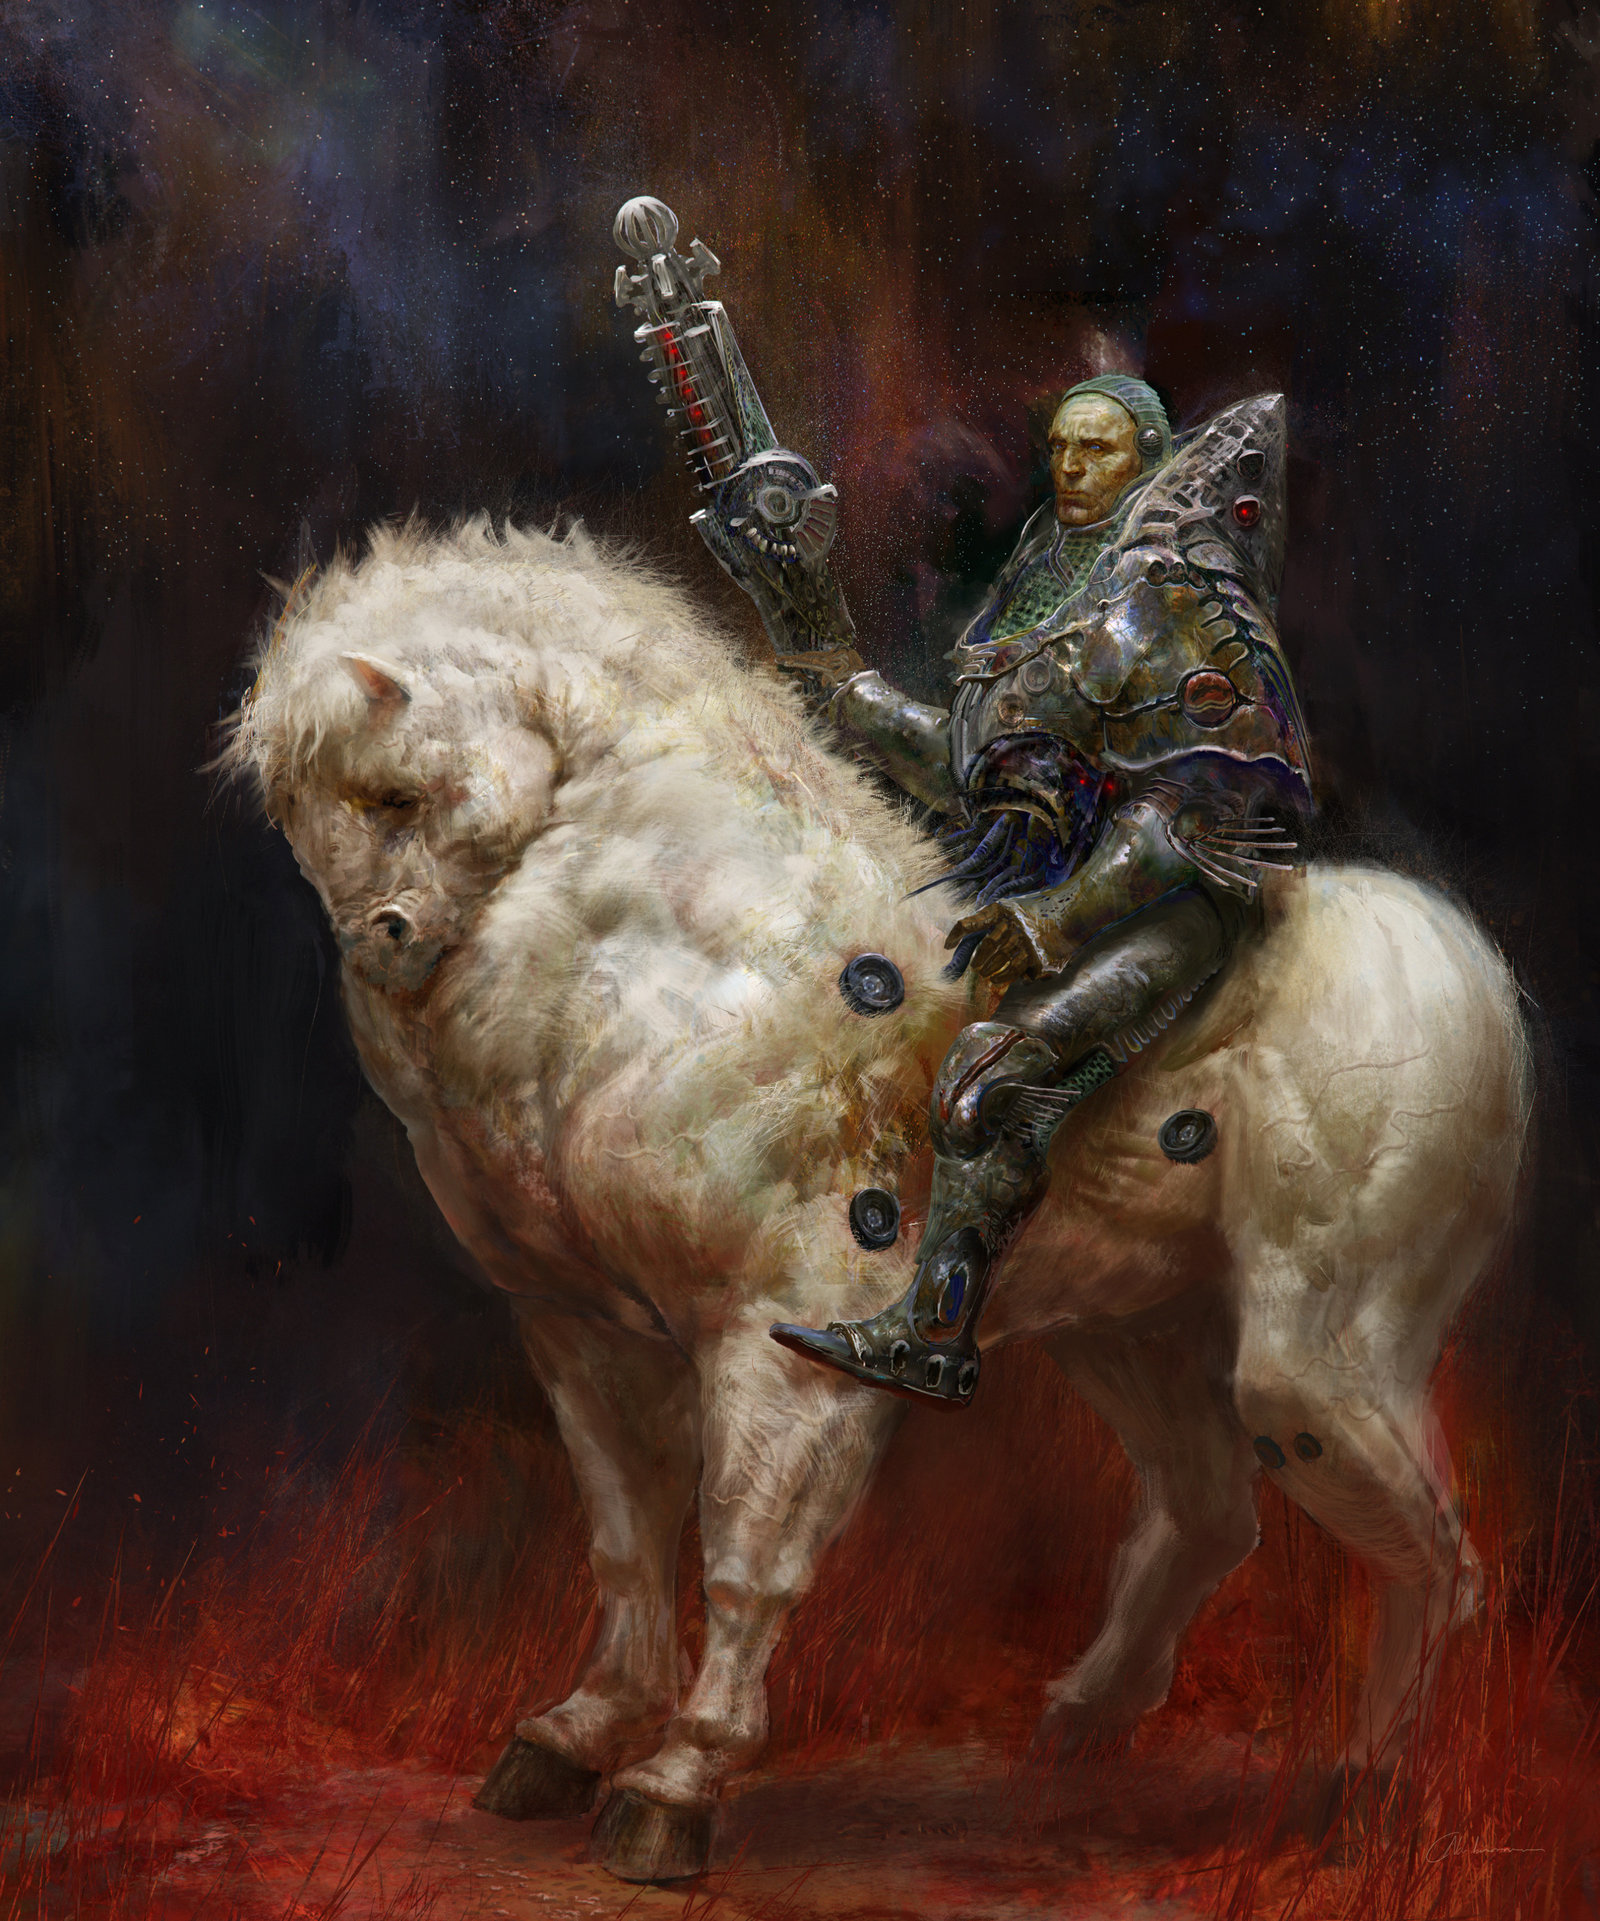 chenthooran_digital_painting_illustration_fantasy_scifi_horse_brynden_gameofthrones